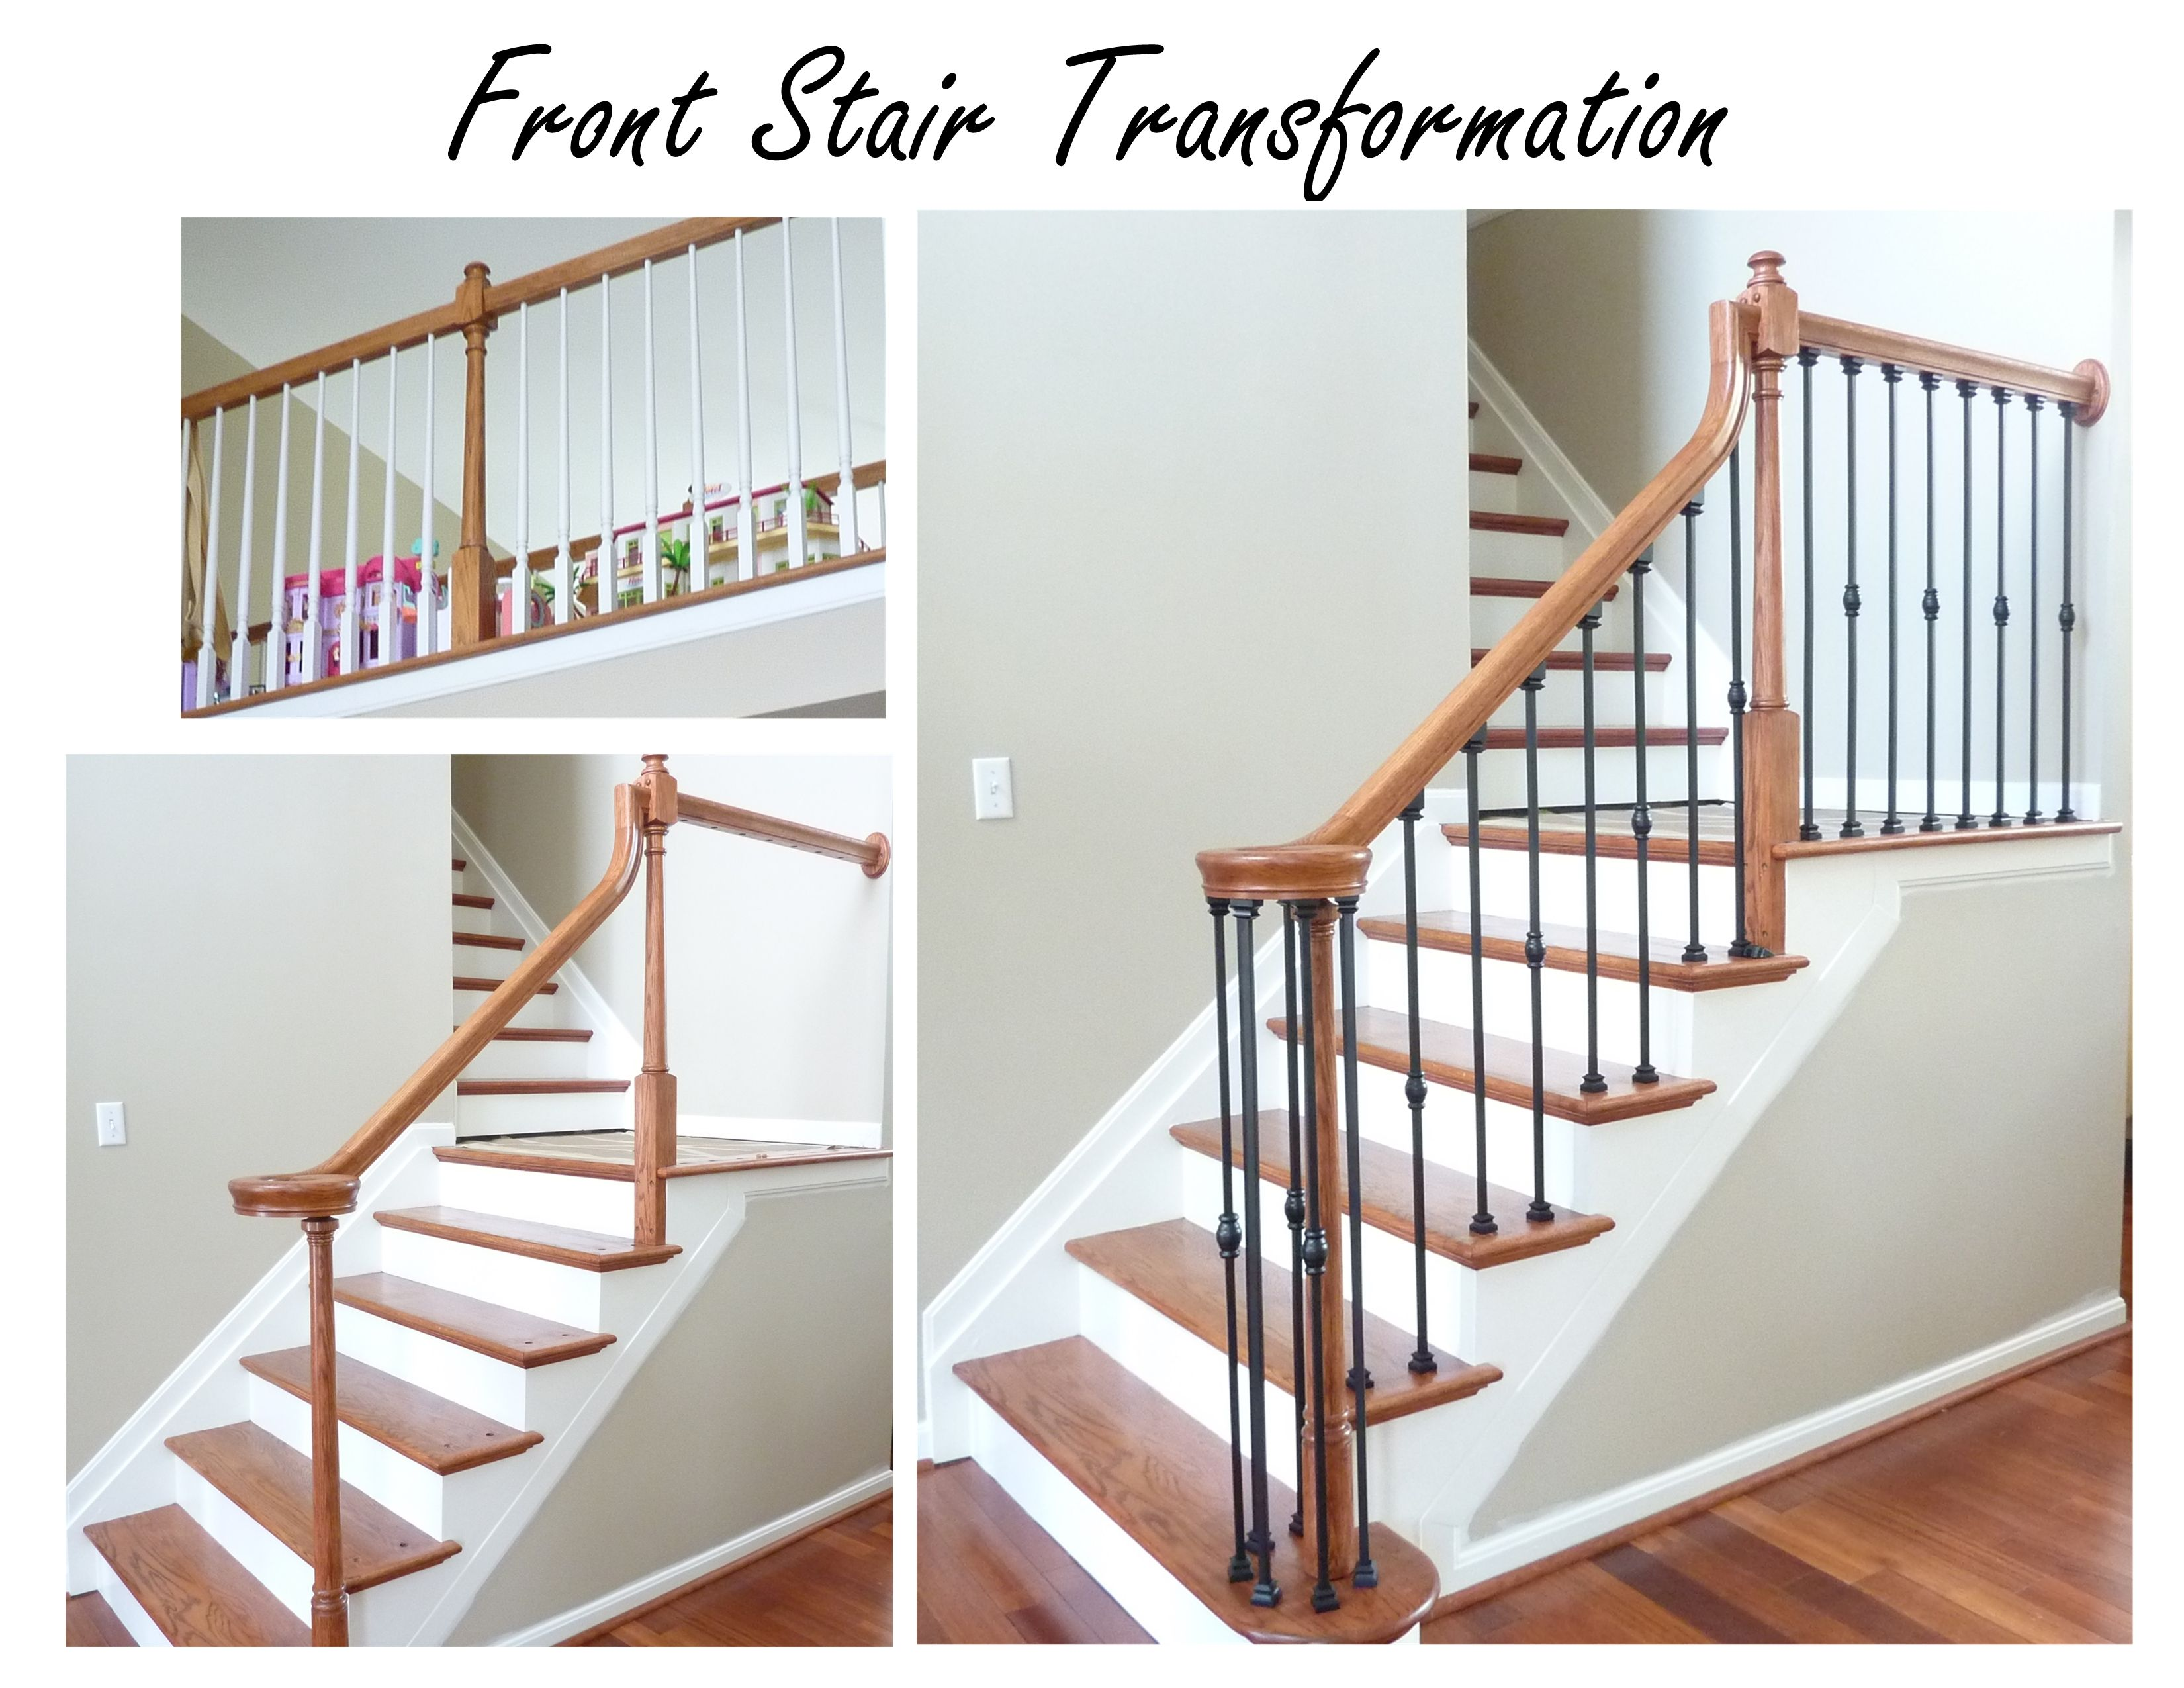 Attrayant Front Stair Update   No Link   From Golden Oak With White Colonial Spindles  To Stain To Match Floors And Iron Spindles. Still To Do, Hardwood On  Landing, ...